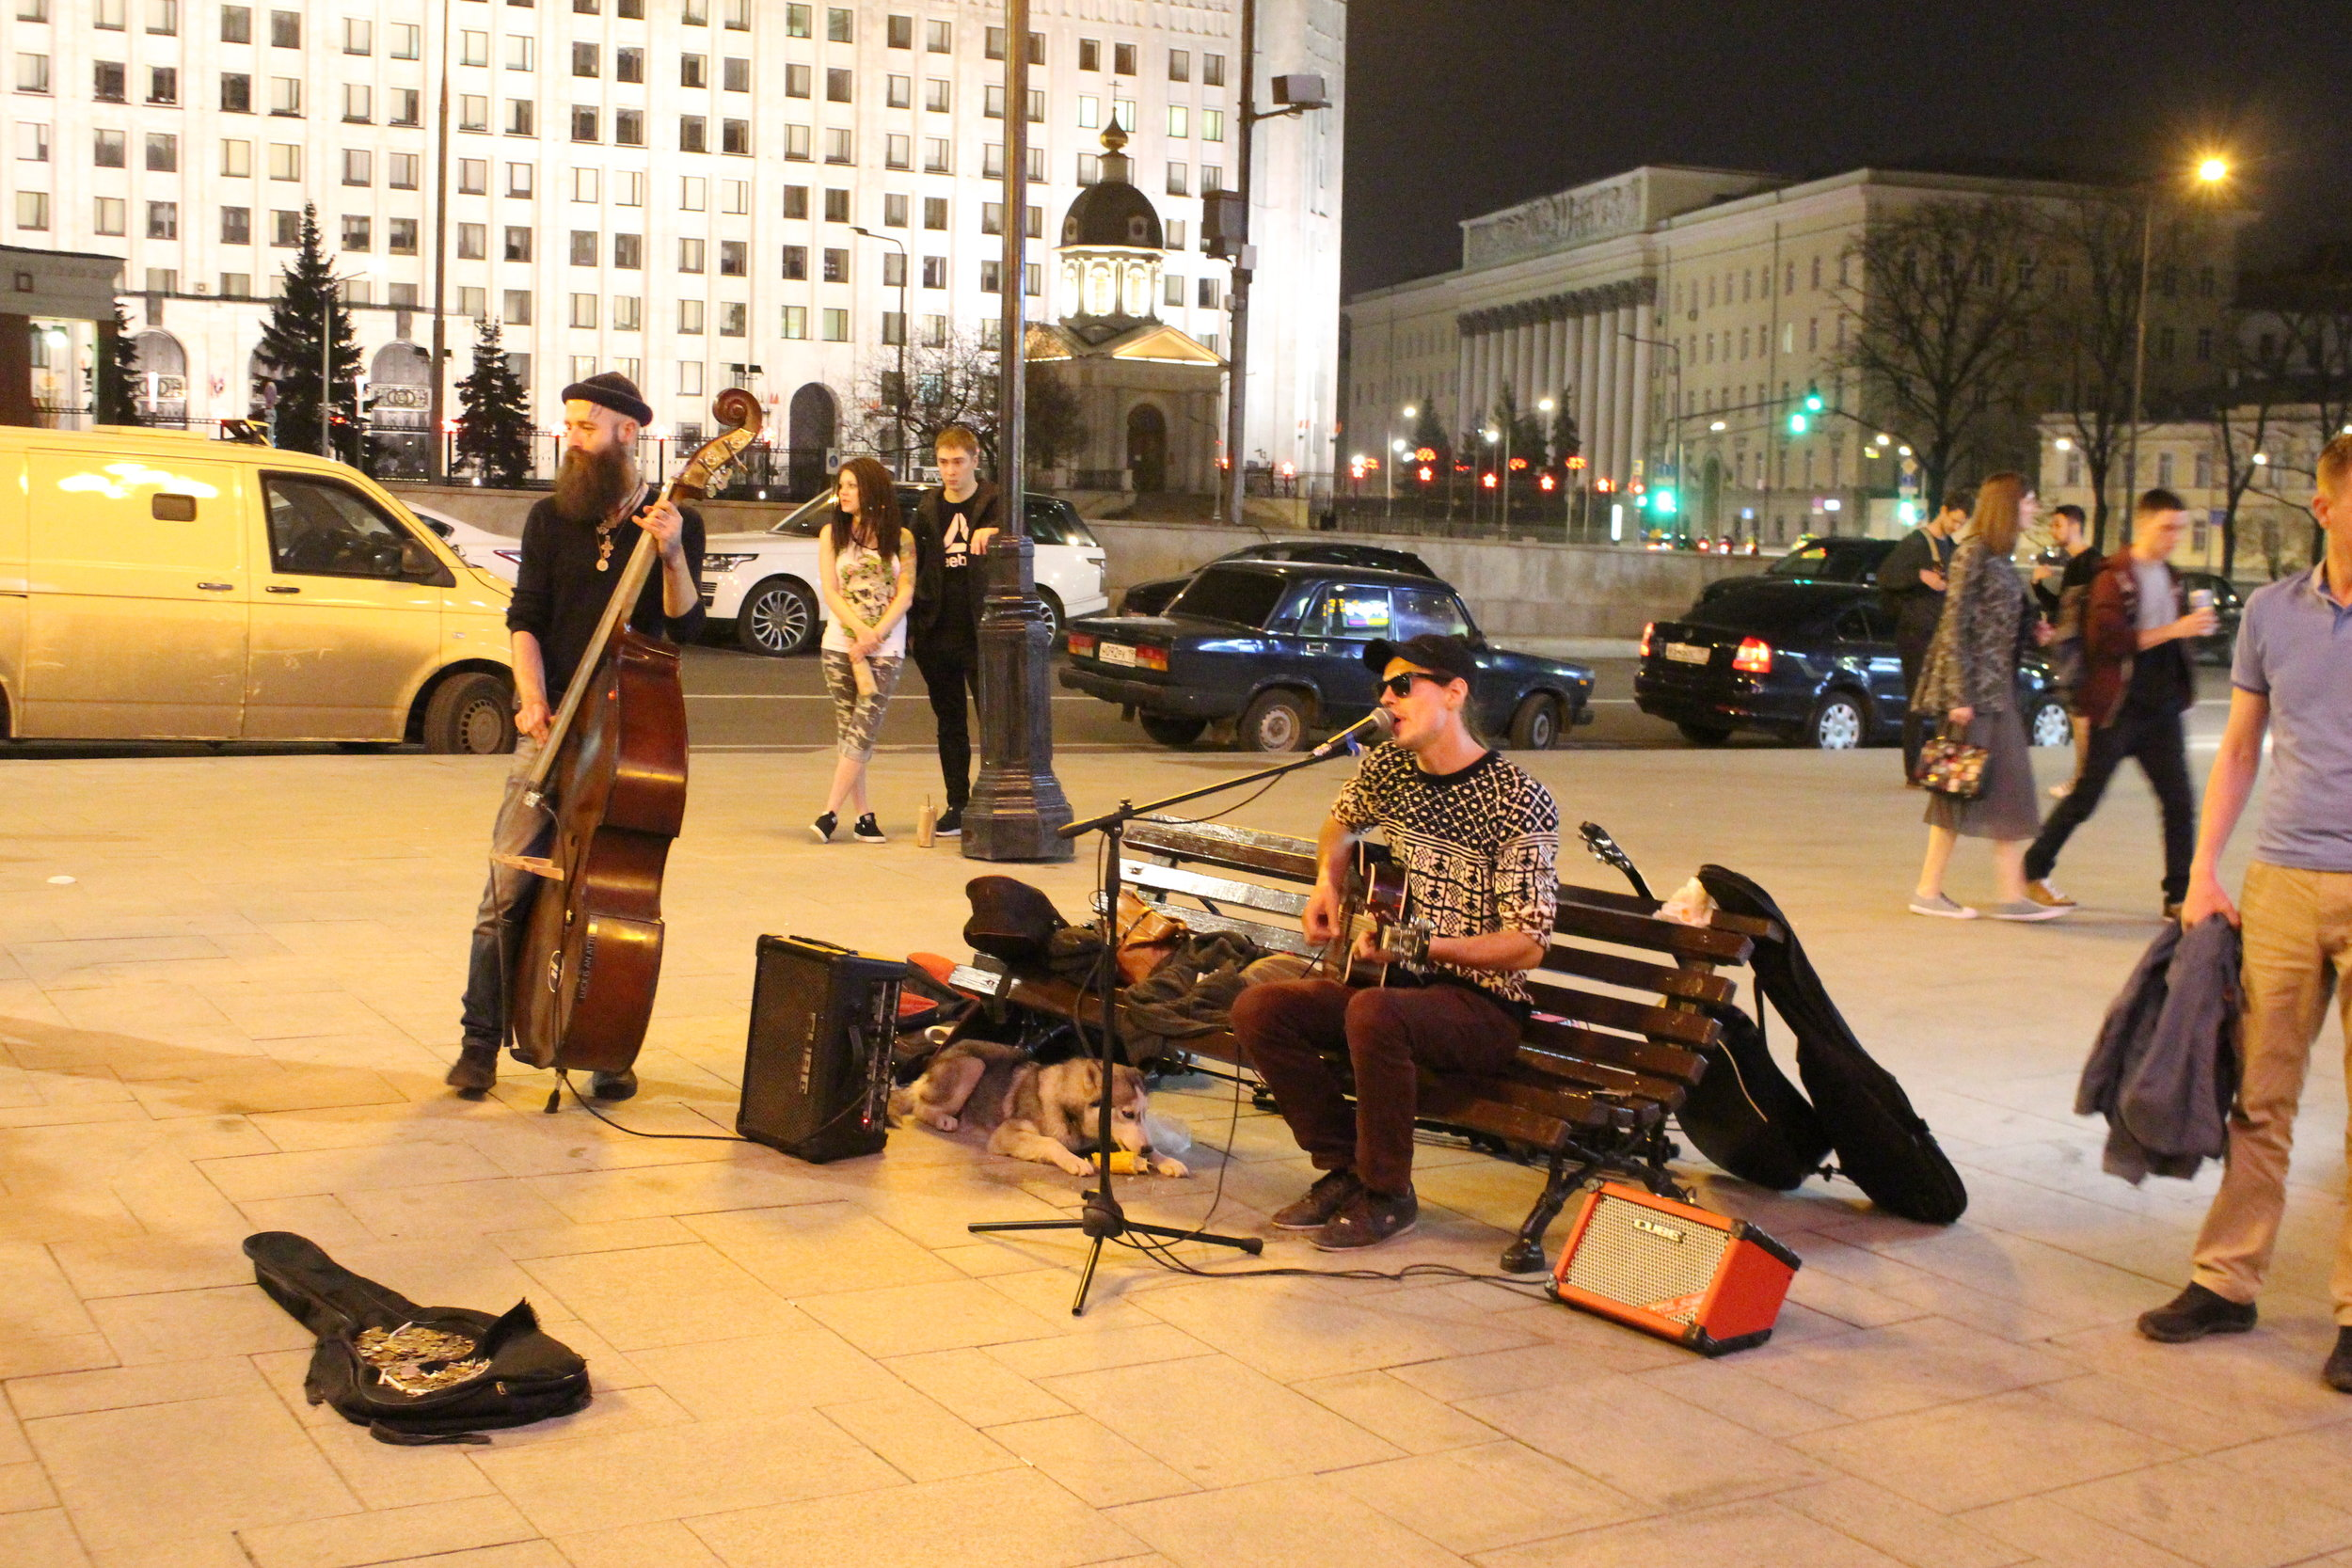 A typical busker image on the Arbat